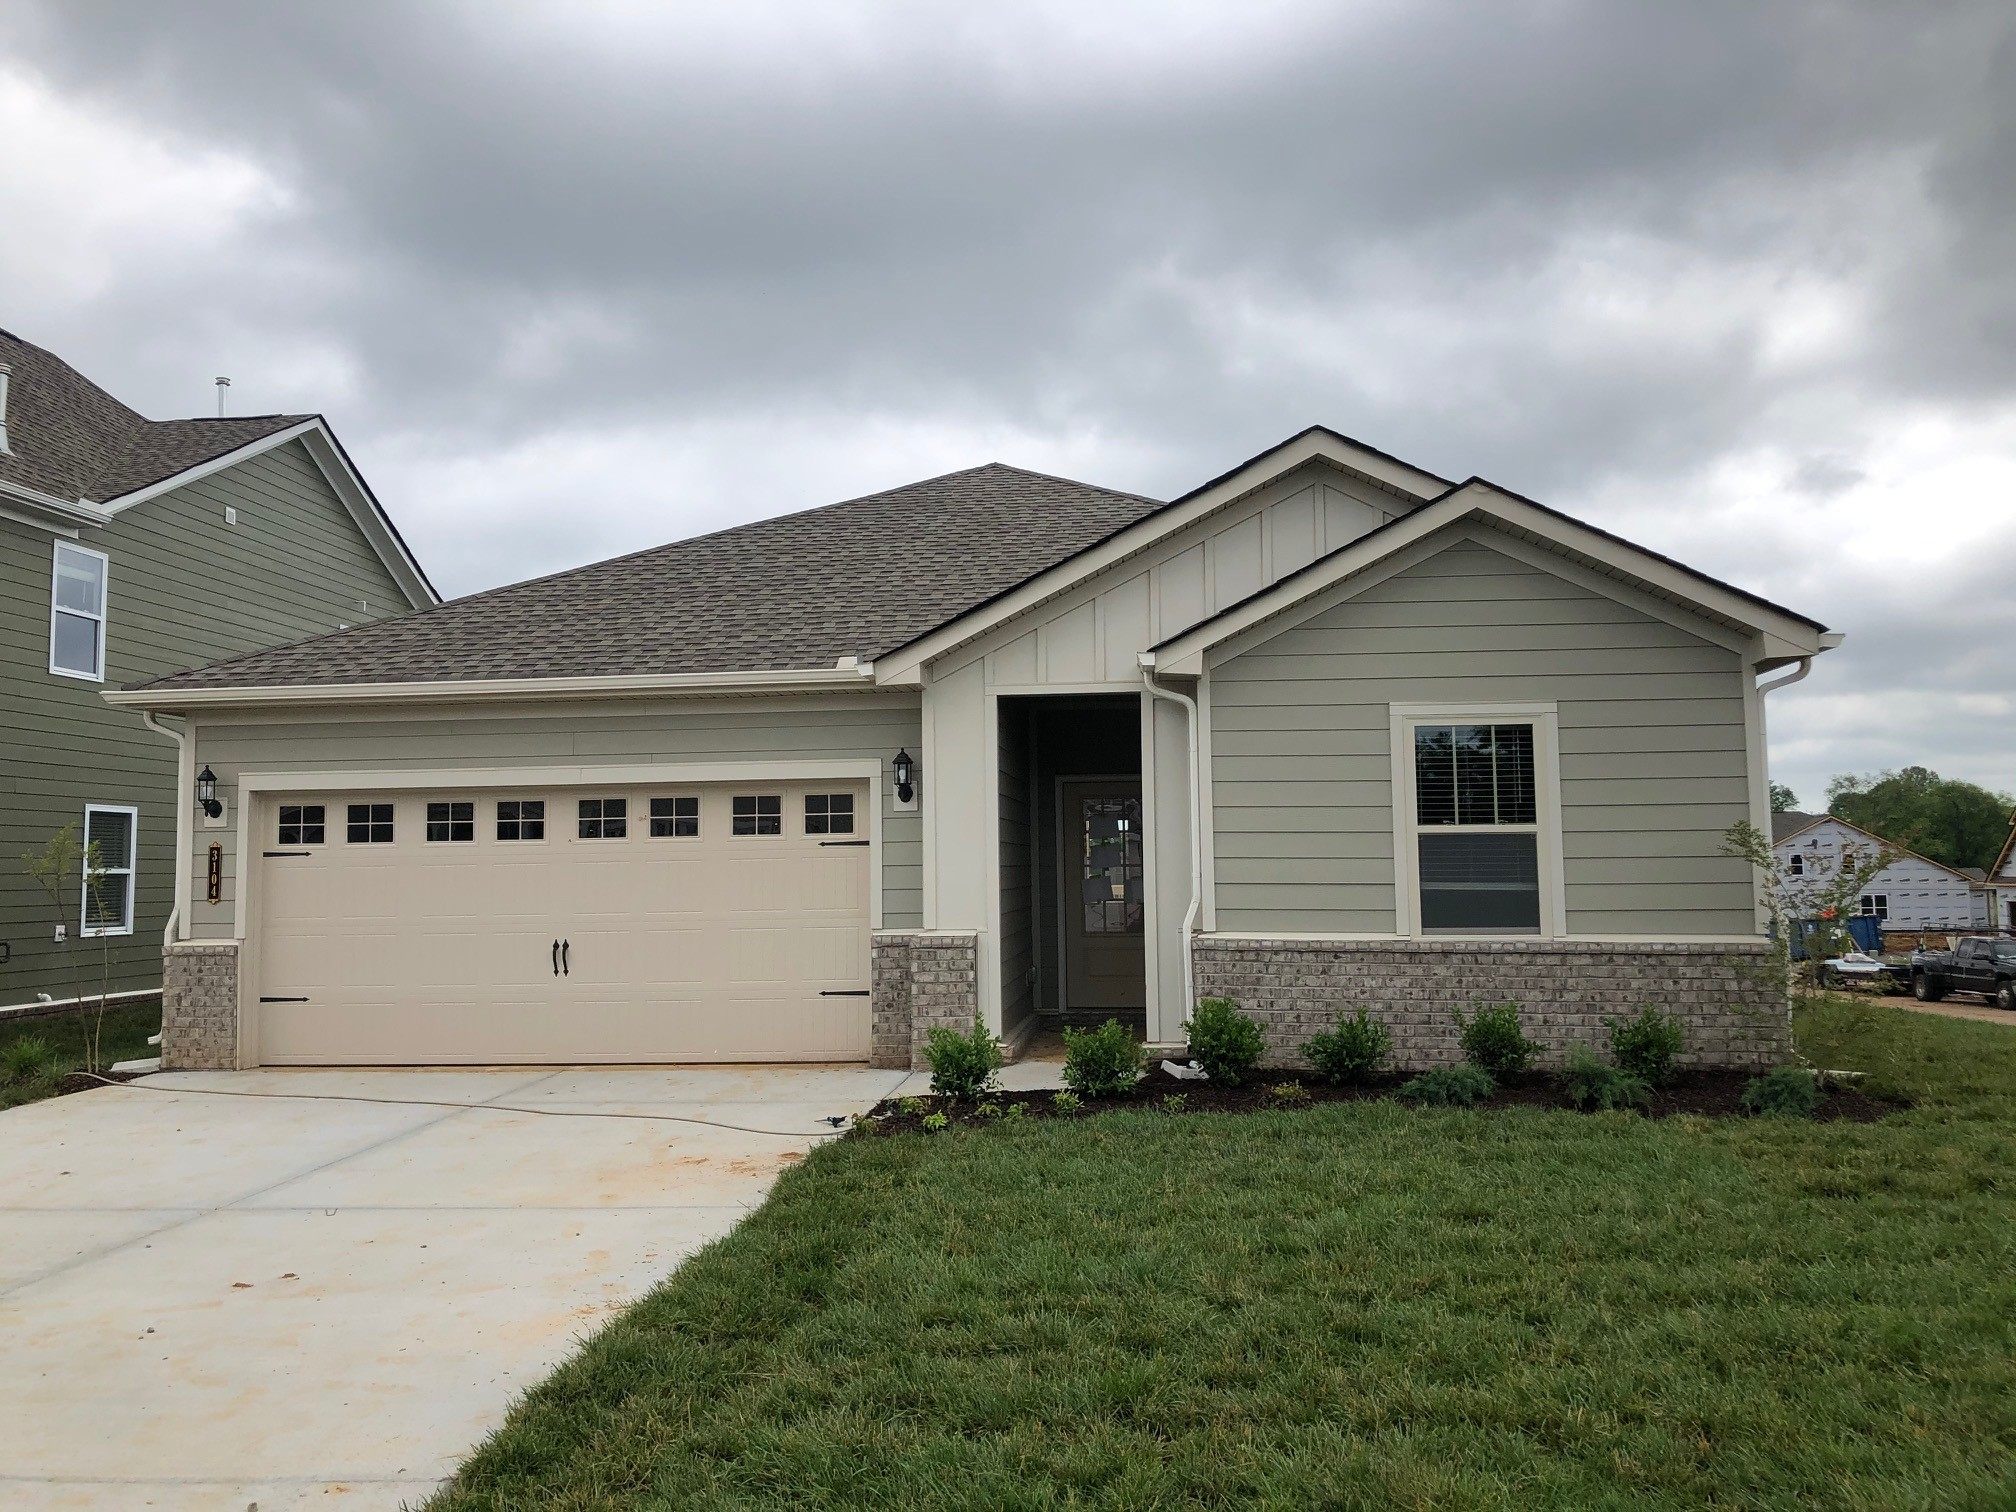 Finally a one level you can love in a charming community you want to be in. This price includes EVERYTHING we have to offer - gas fireplace and covered patio, quartz countertops, fridge, blinds, smart home automation, and much more. Community pool coming 2021 and walking trails recently installed. Wide open living space is inviting and perfect for entertaining.